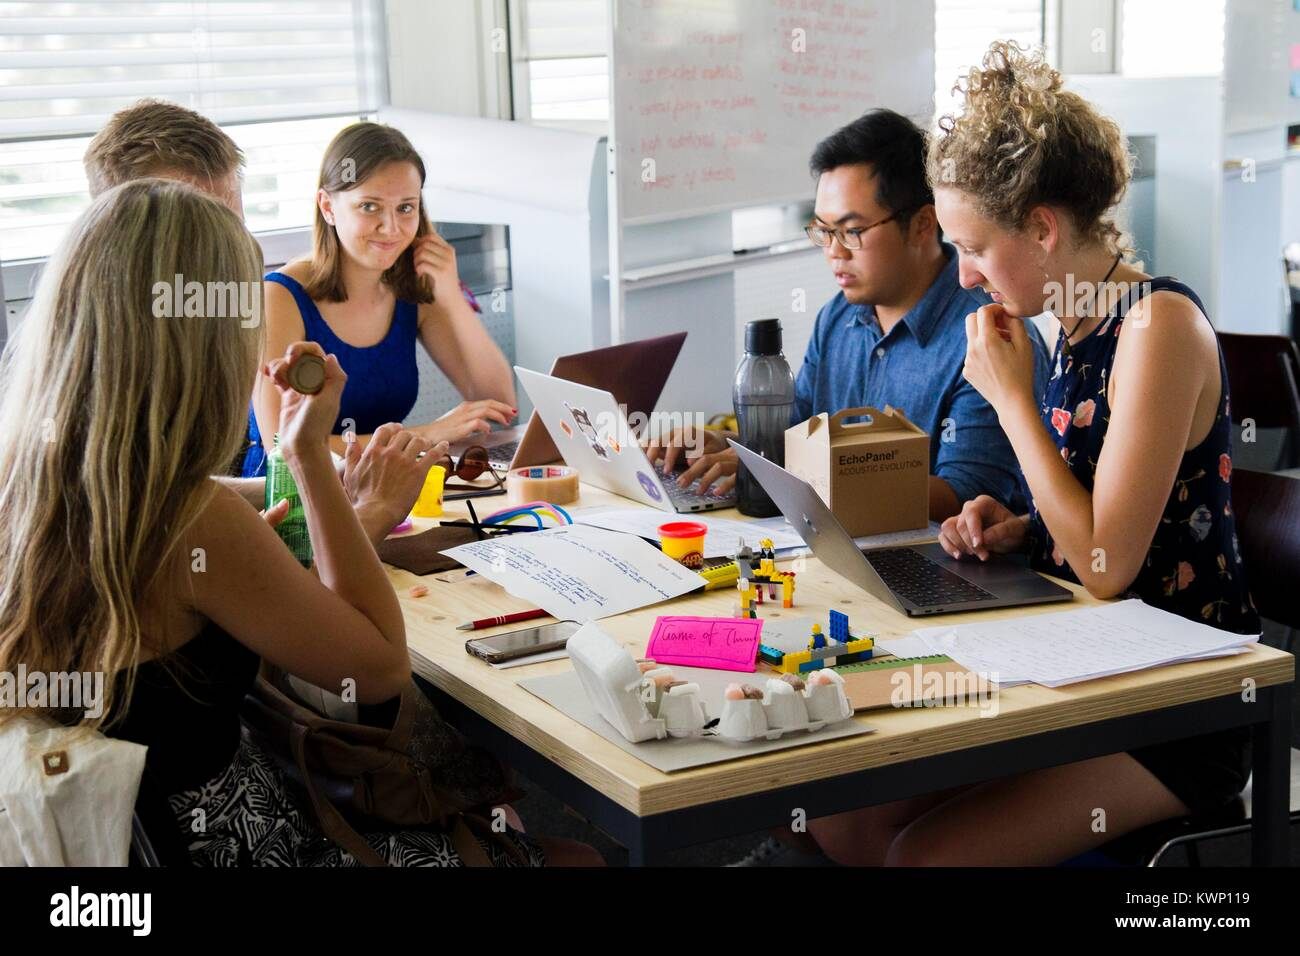 Millennials brainstorming in a modern office - Stock Image